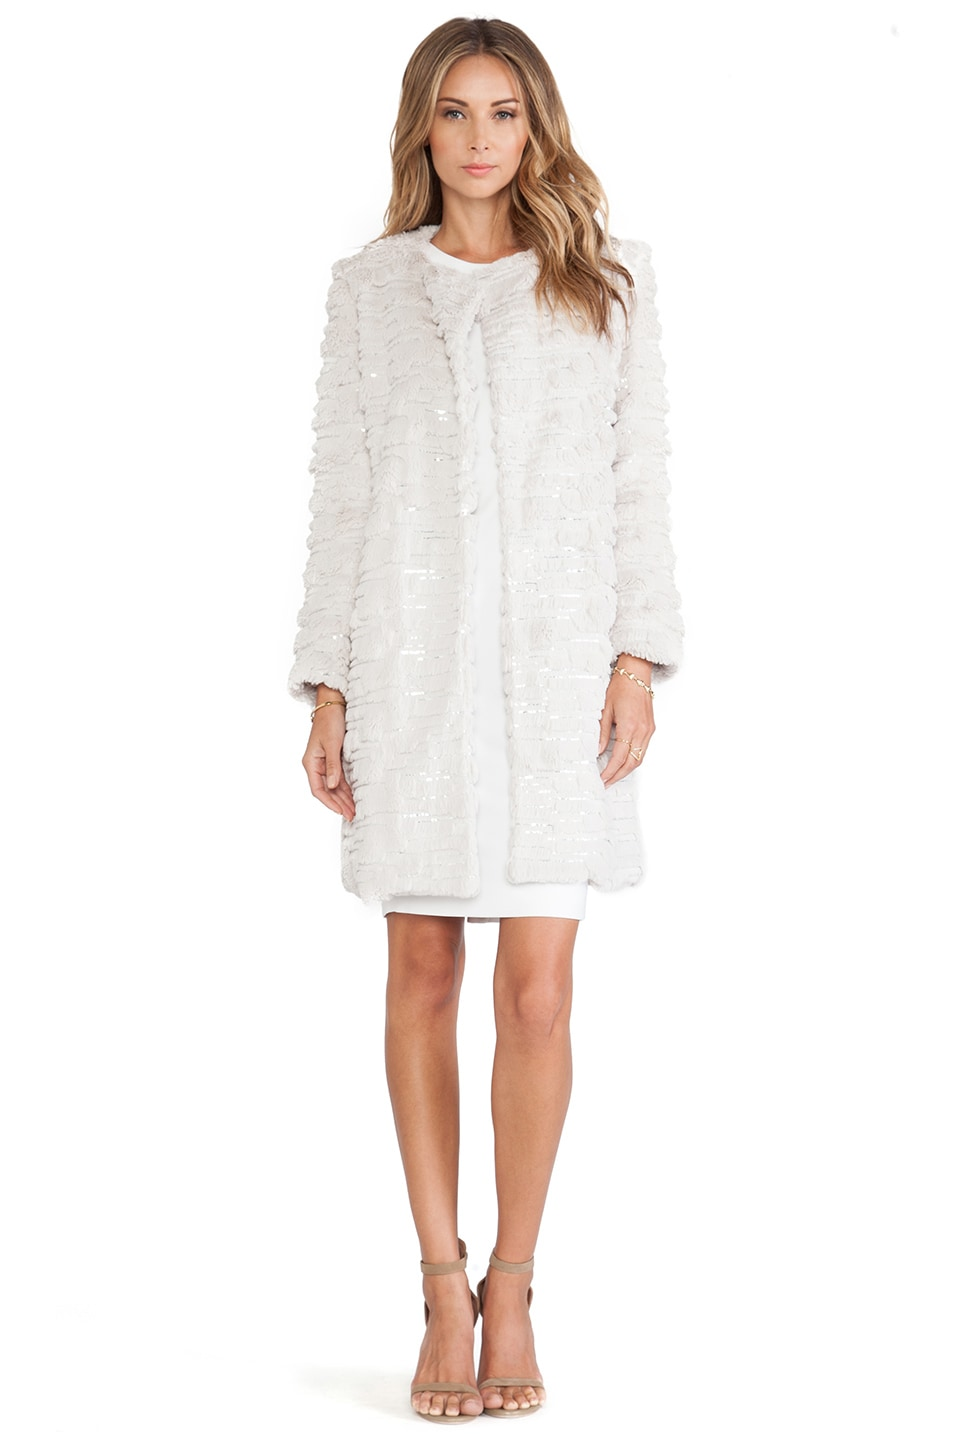 MILLY Sequin Embroidered Faux Fur Coat in Beige